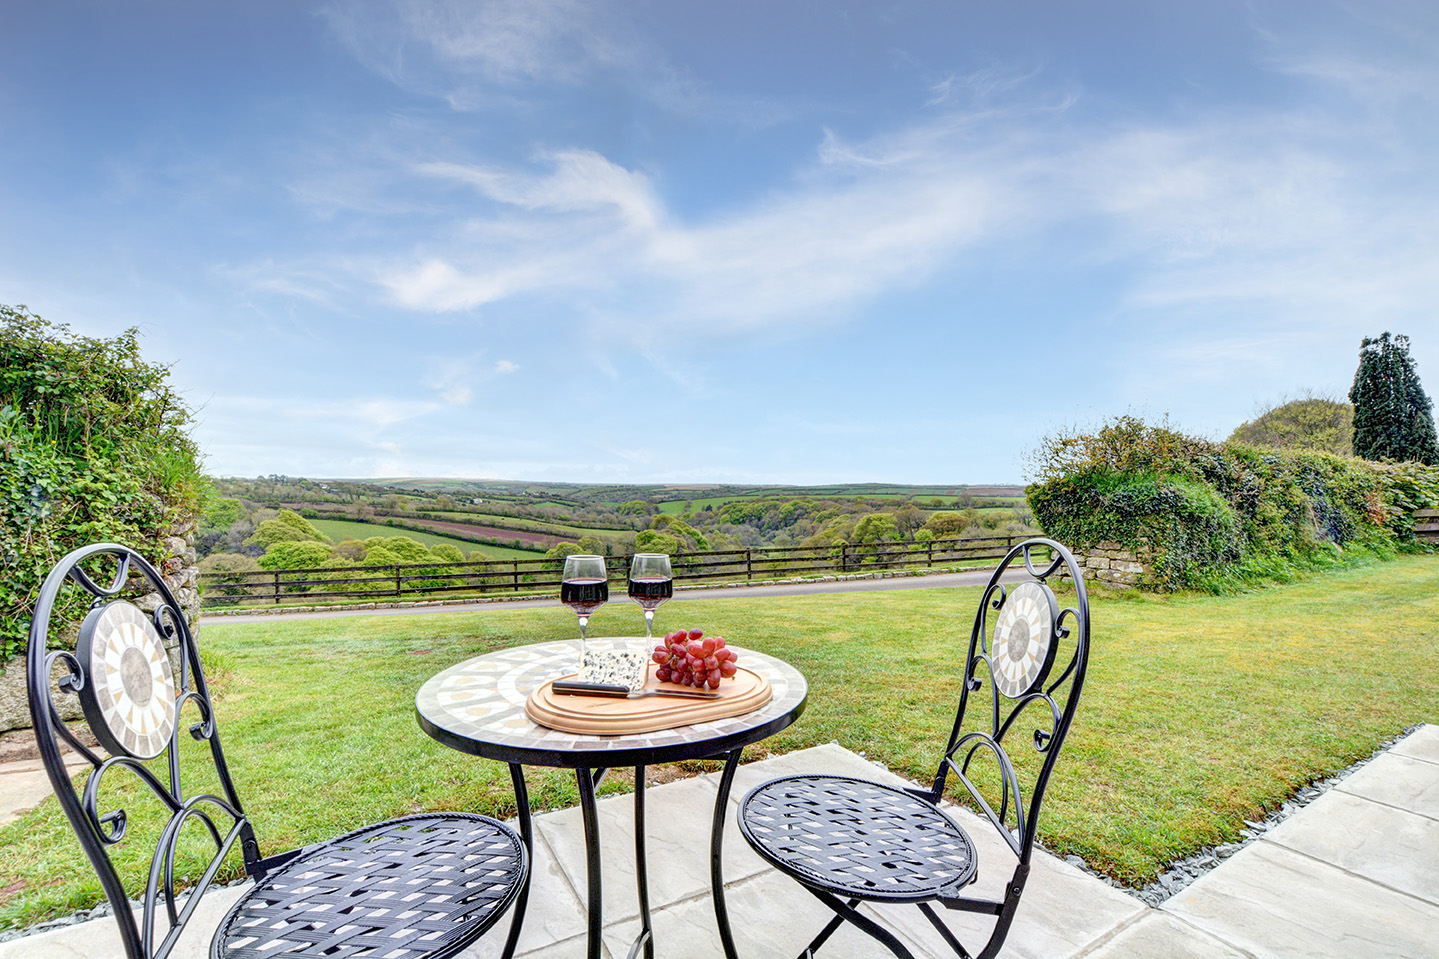 The views from the patio area of The Linney self catering cottage converted barn at Penrose Burden holiday cottages in Cornwall.jpg